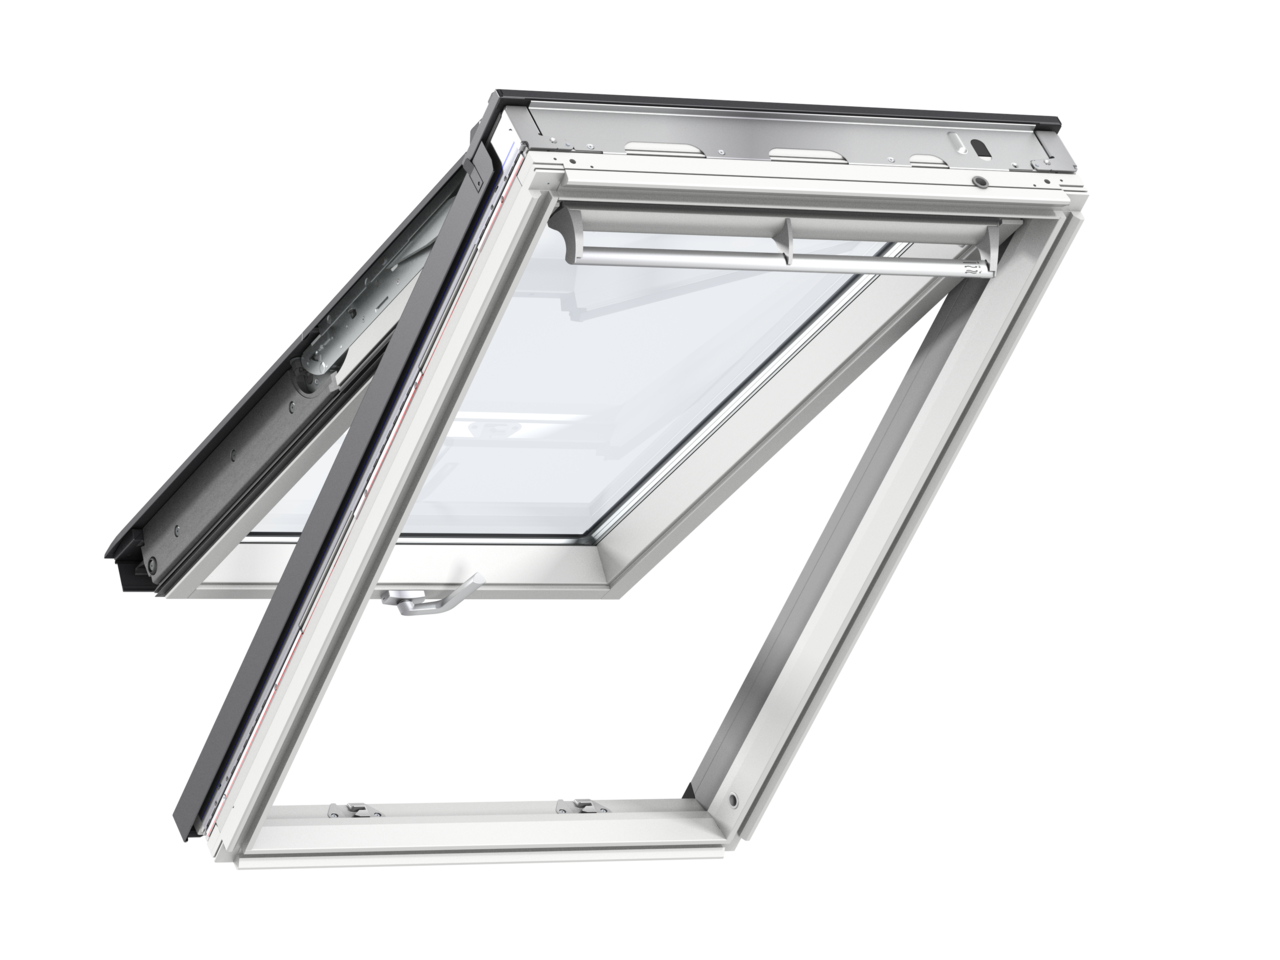 Velux GPL FK06 660 x 1180mm Top Hung 60Pane Roof Window - White Painted